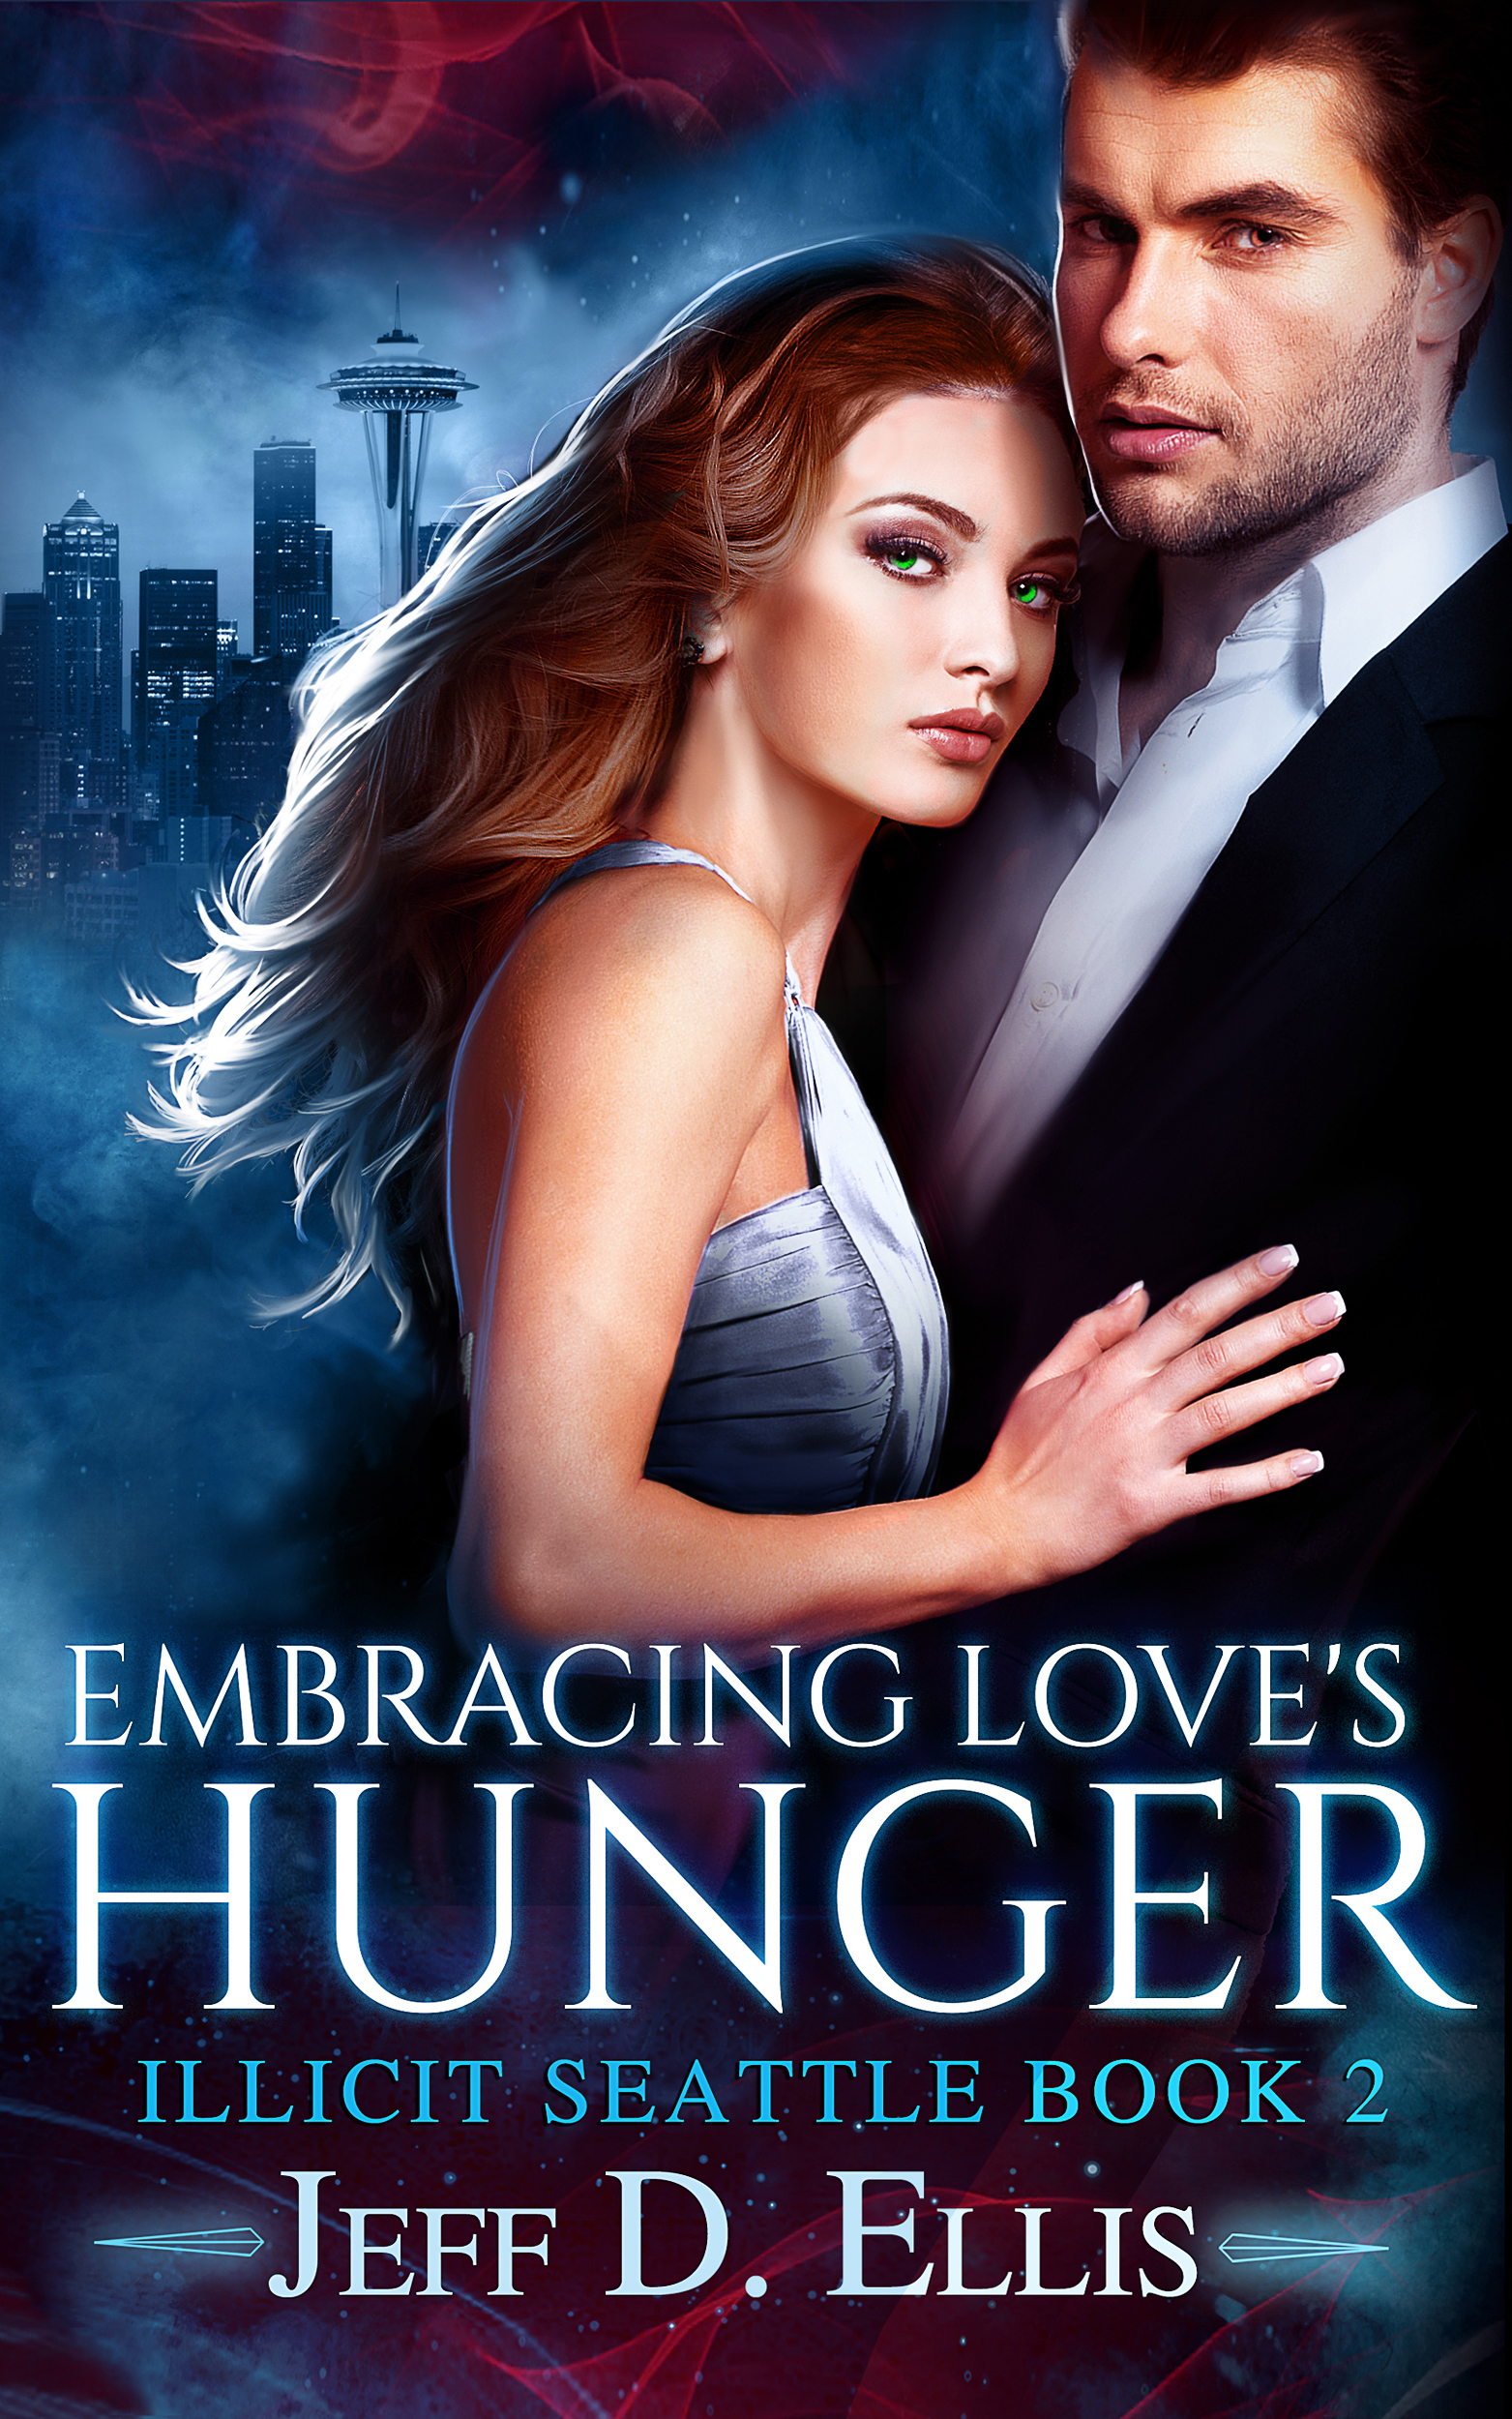 Embracing Love's Hunger